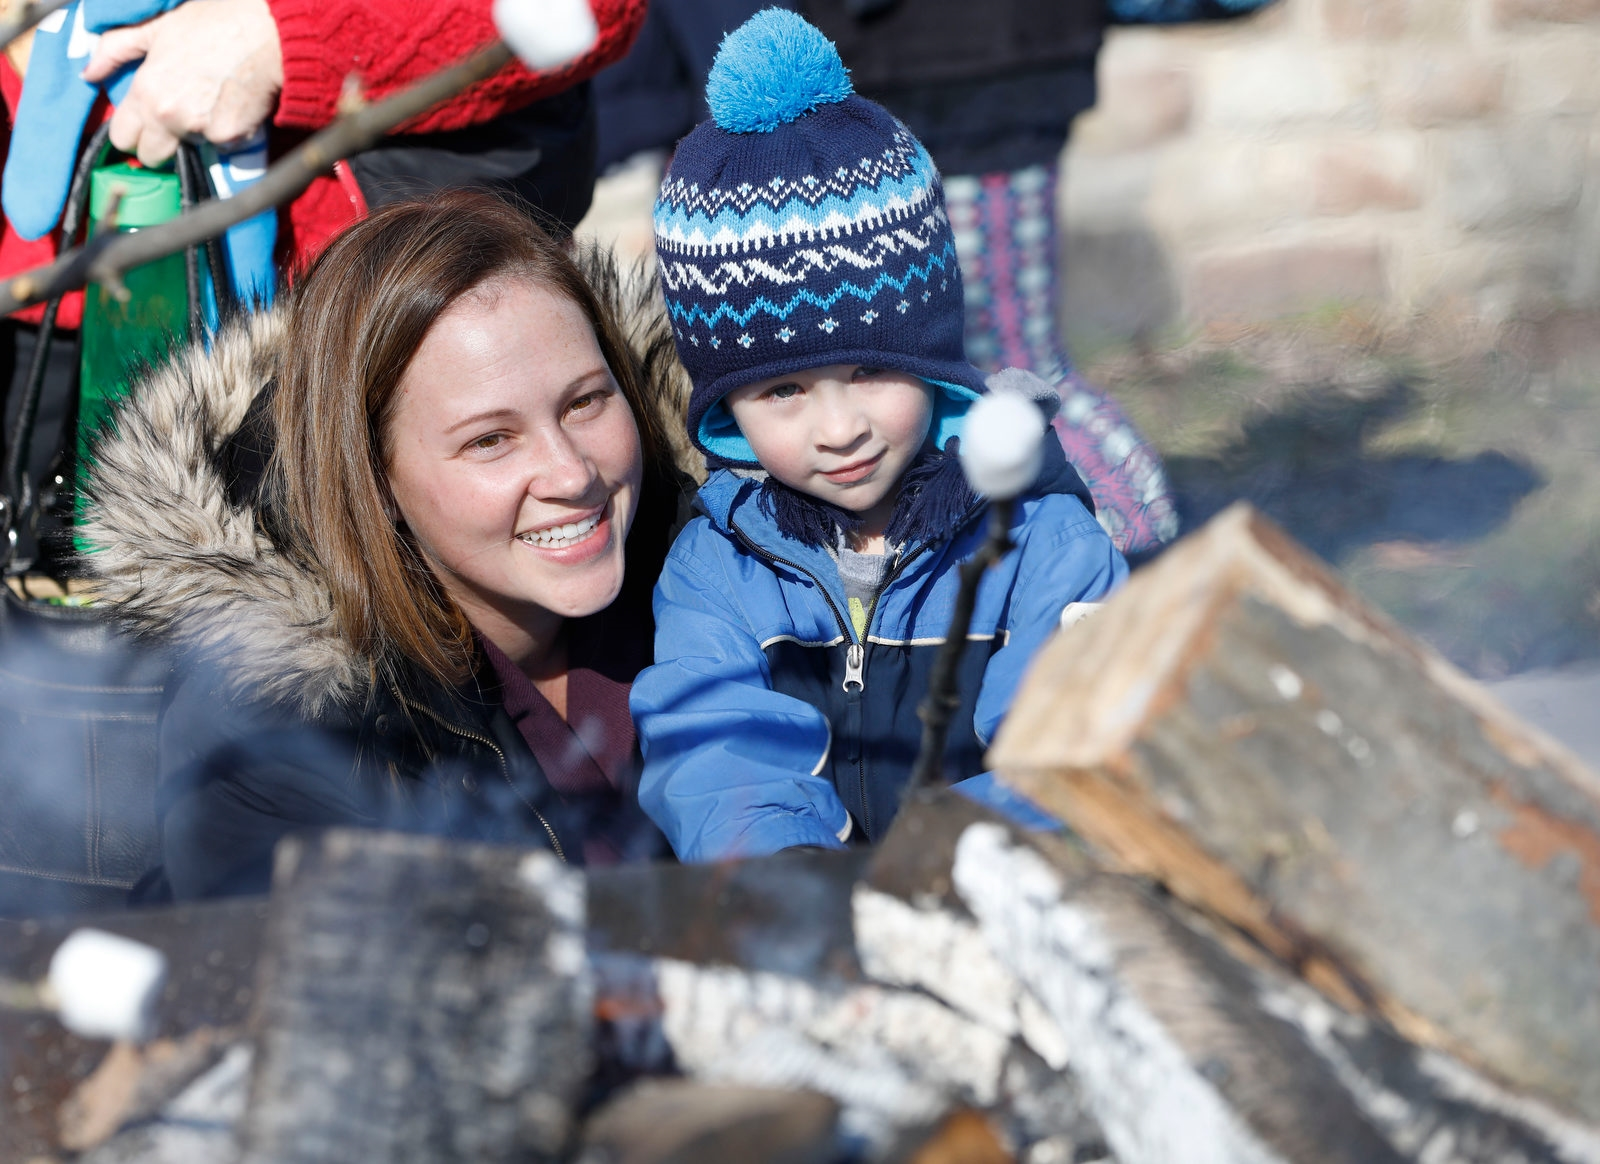 Danielle Haslinger and her son Will, 3, of Orchard Park roast marshmallows by the fire.